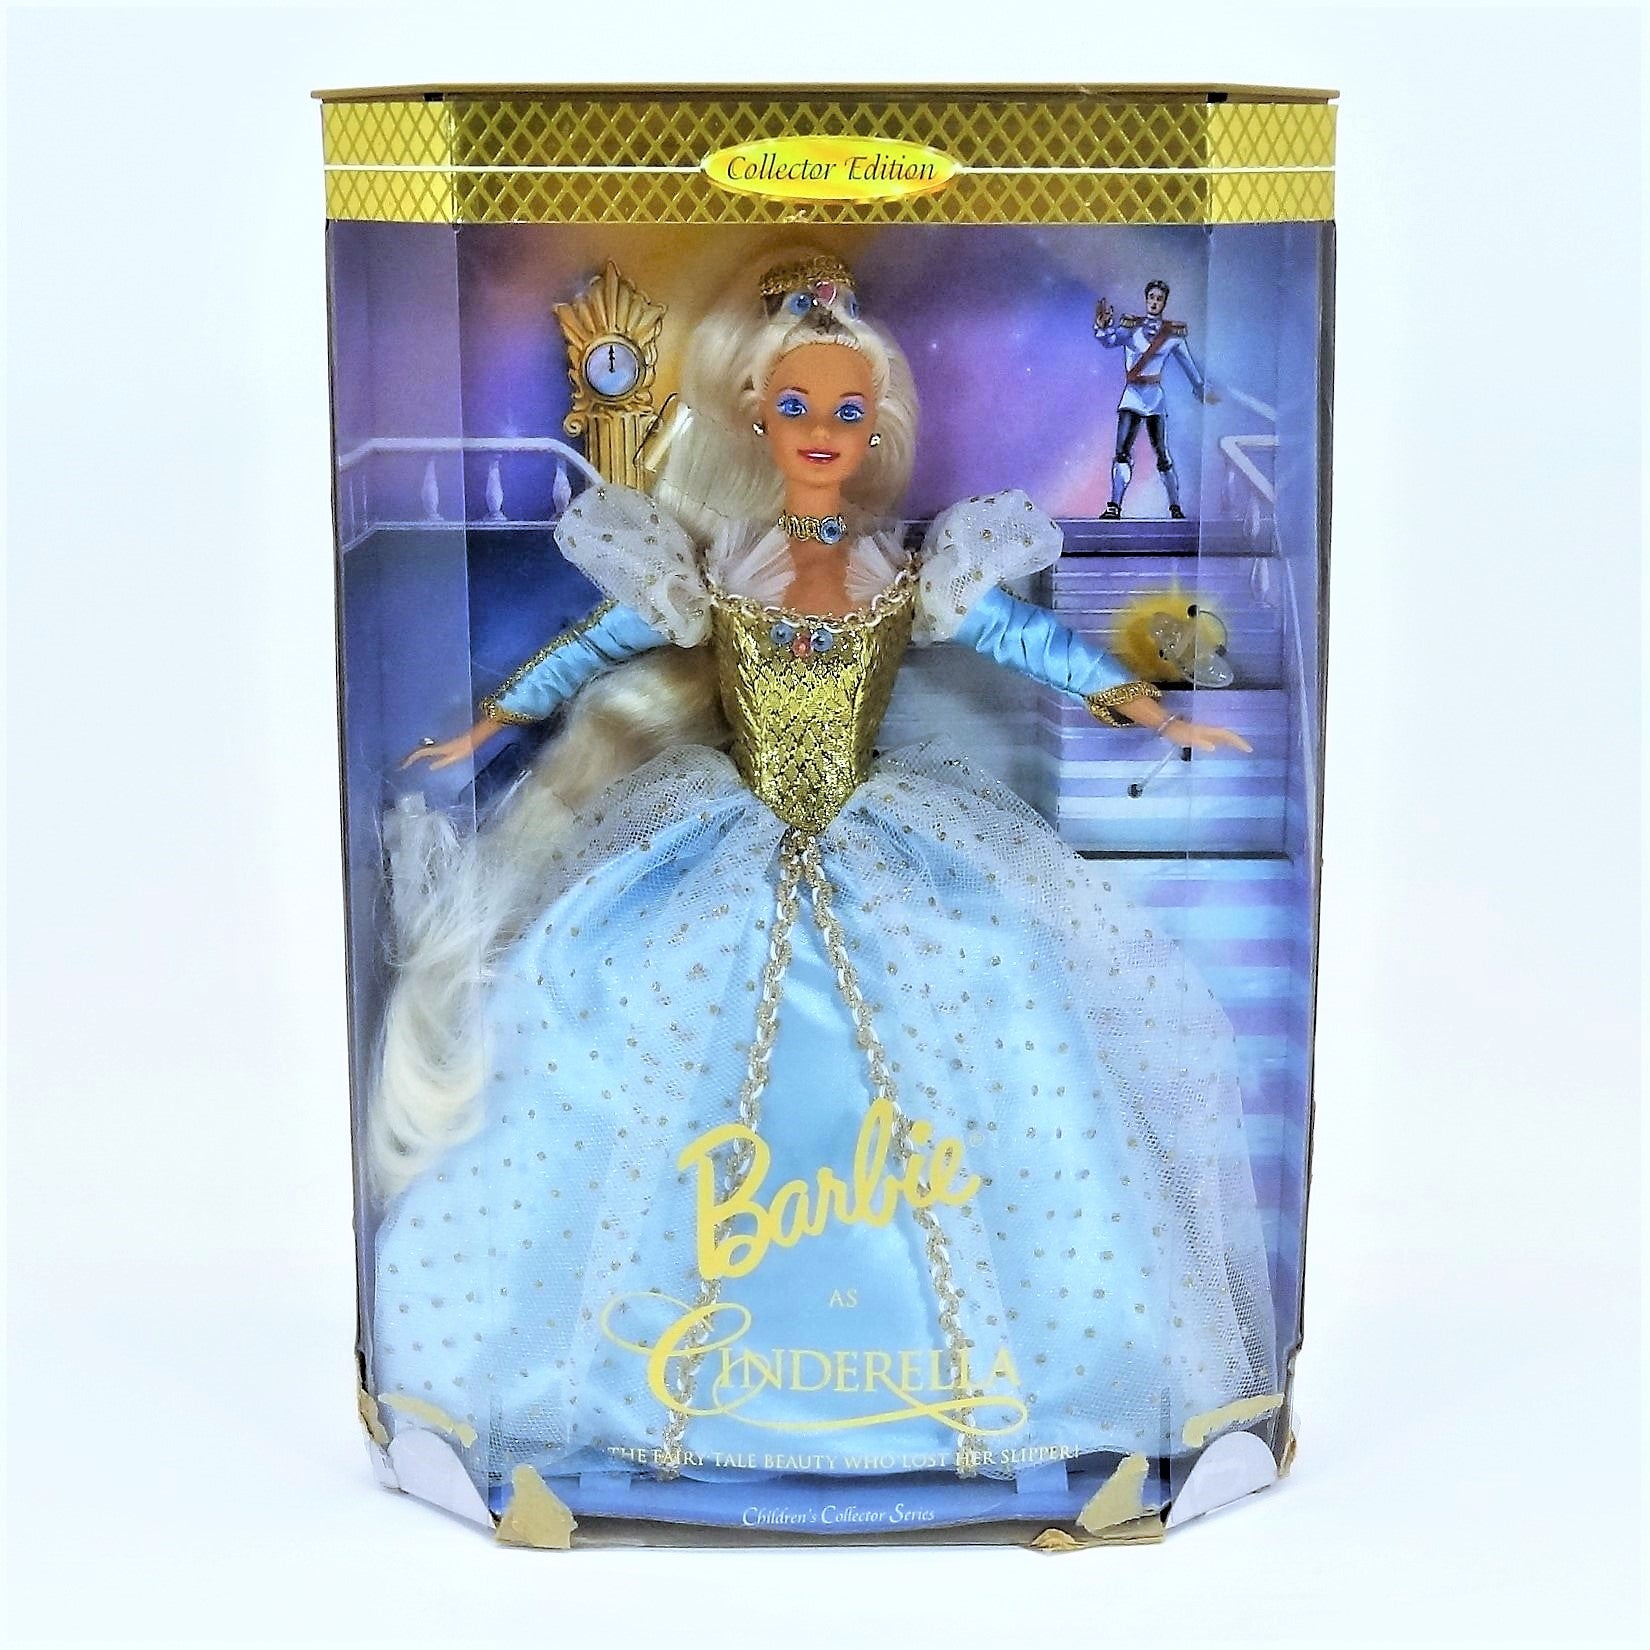 Barbie As Cinderella Children's Collector Series Mattel